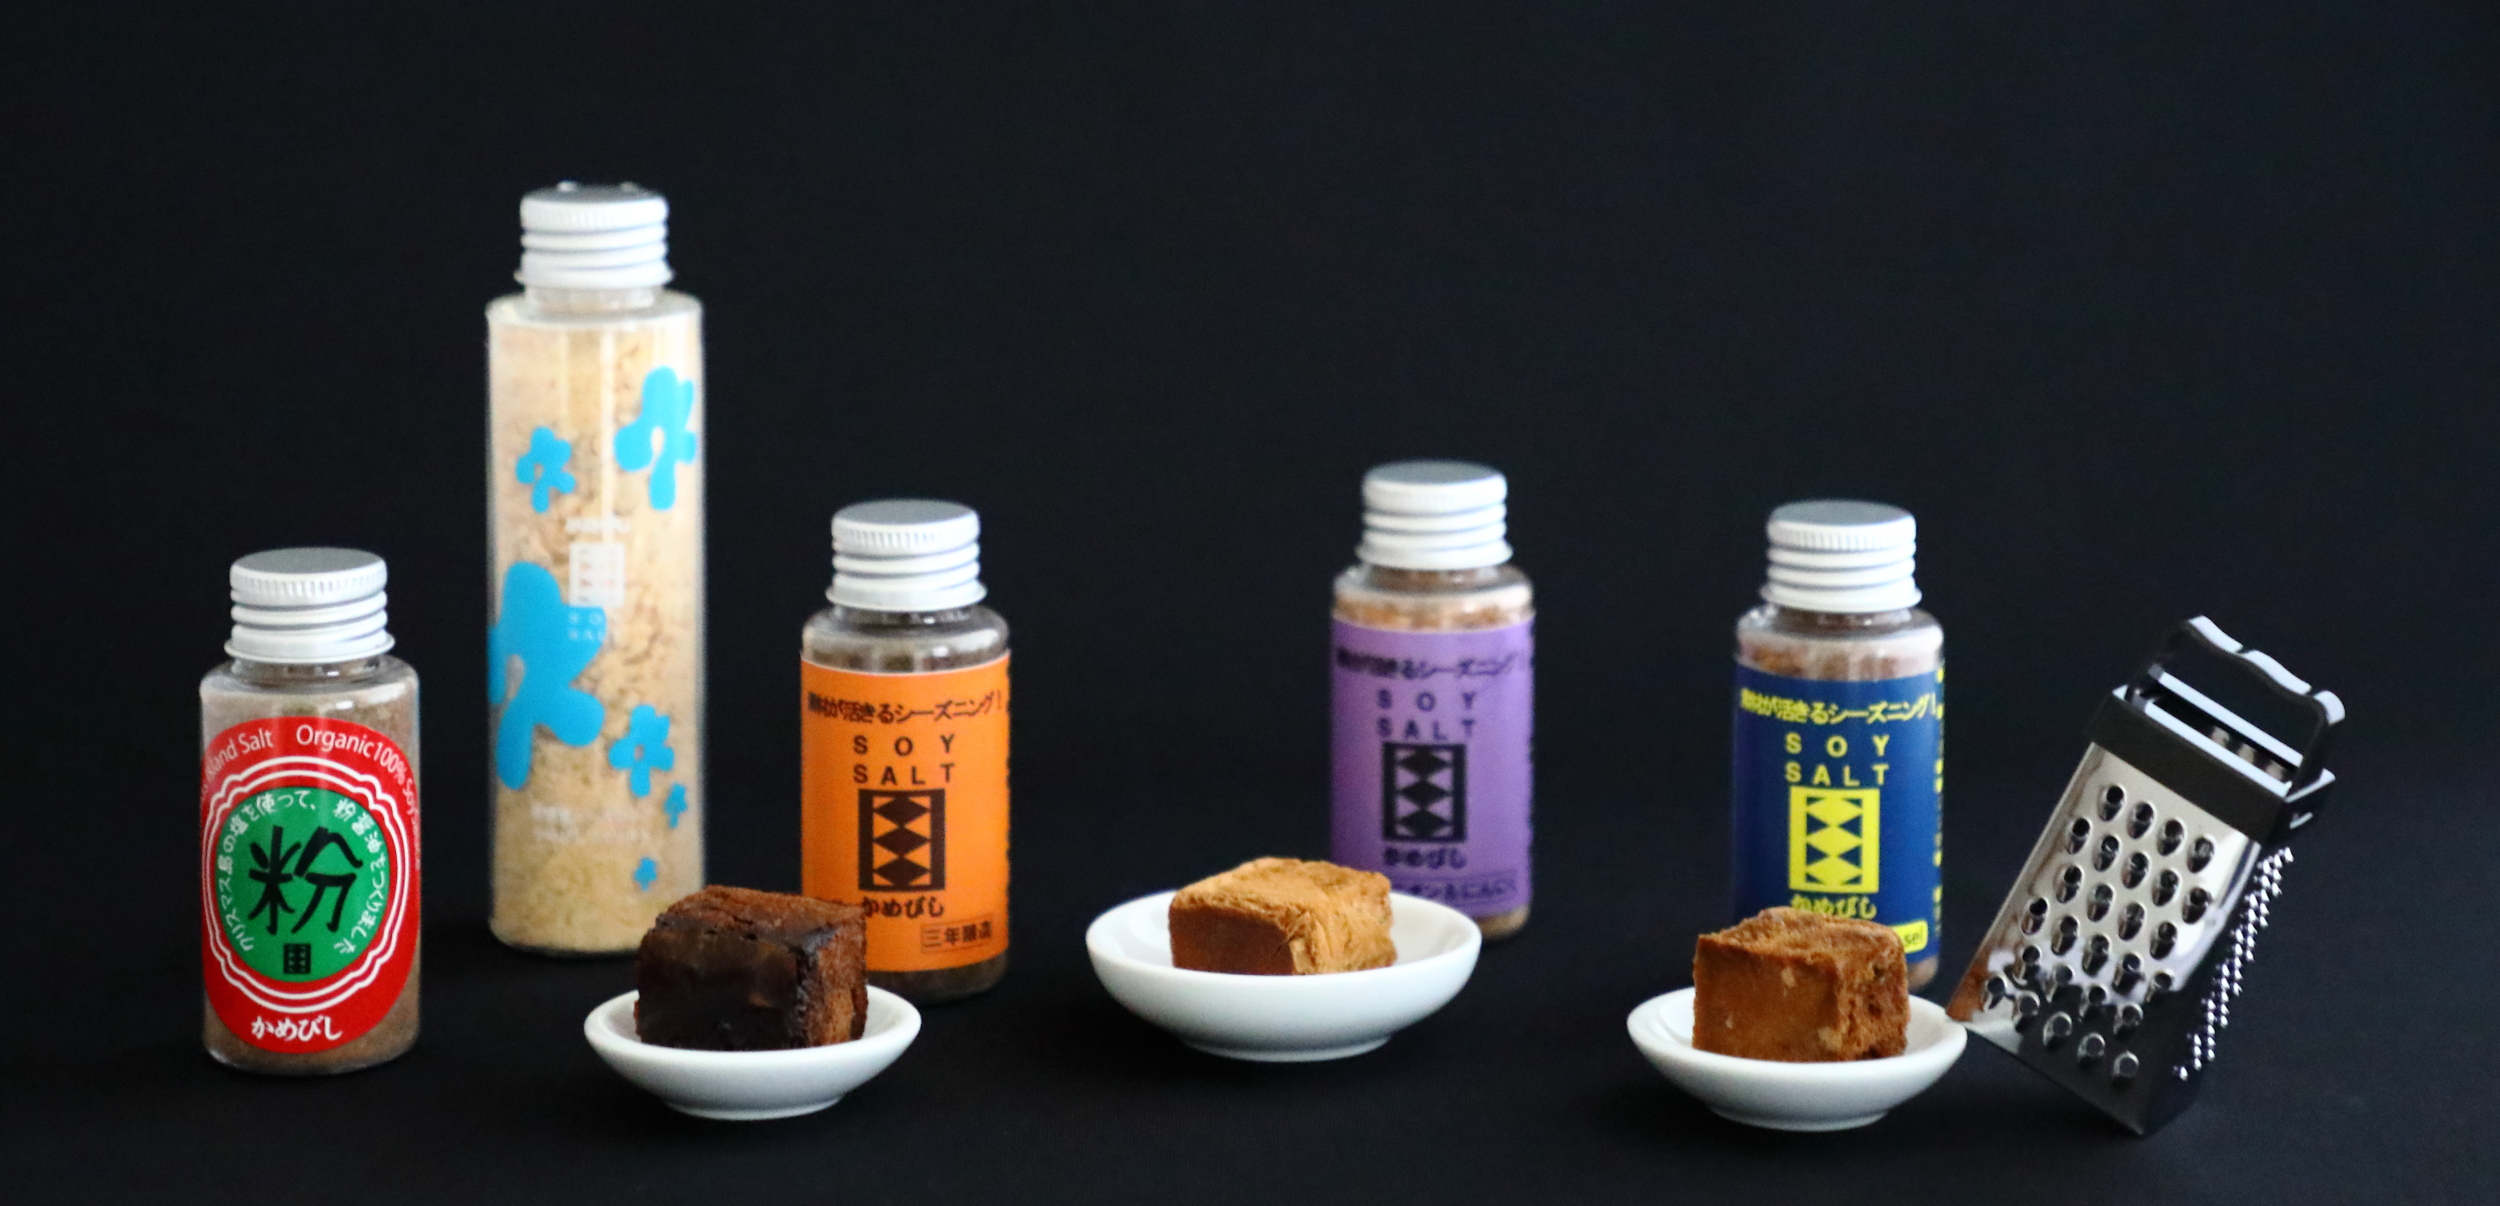 """One of Kamebishiya's modern innovations is freeze-dried soy sauce, called soy salts, which come in a powdered form in bottles and cubes that can be grated as used. From the left: a powdered soy sauce made with mineral-rich sea salt from Christmas Island, a tall bottle of powdered  usukuchi  soy sauce, three-year soy sauce in powdered and cube forms, onion and garlic-flavored soy sauce in powdered and cube forms, and """"super sel"""" soy sauce in powdered and cube forms that have been fortified with extra salt."""